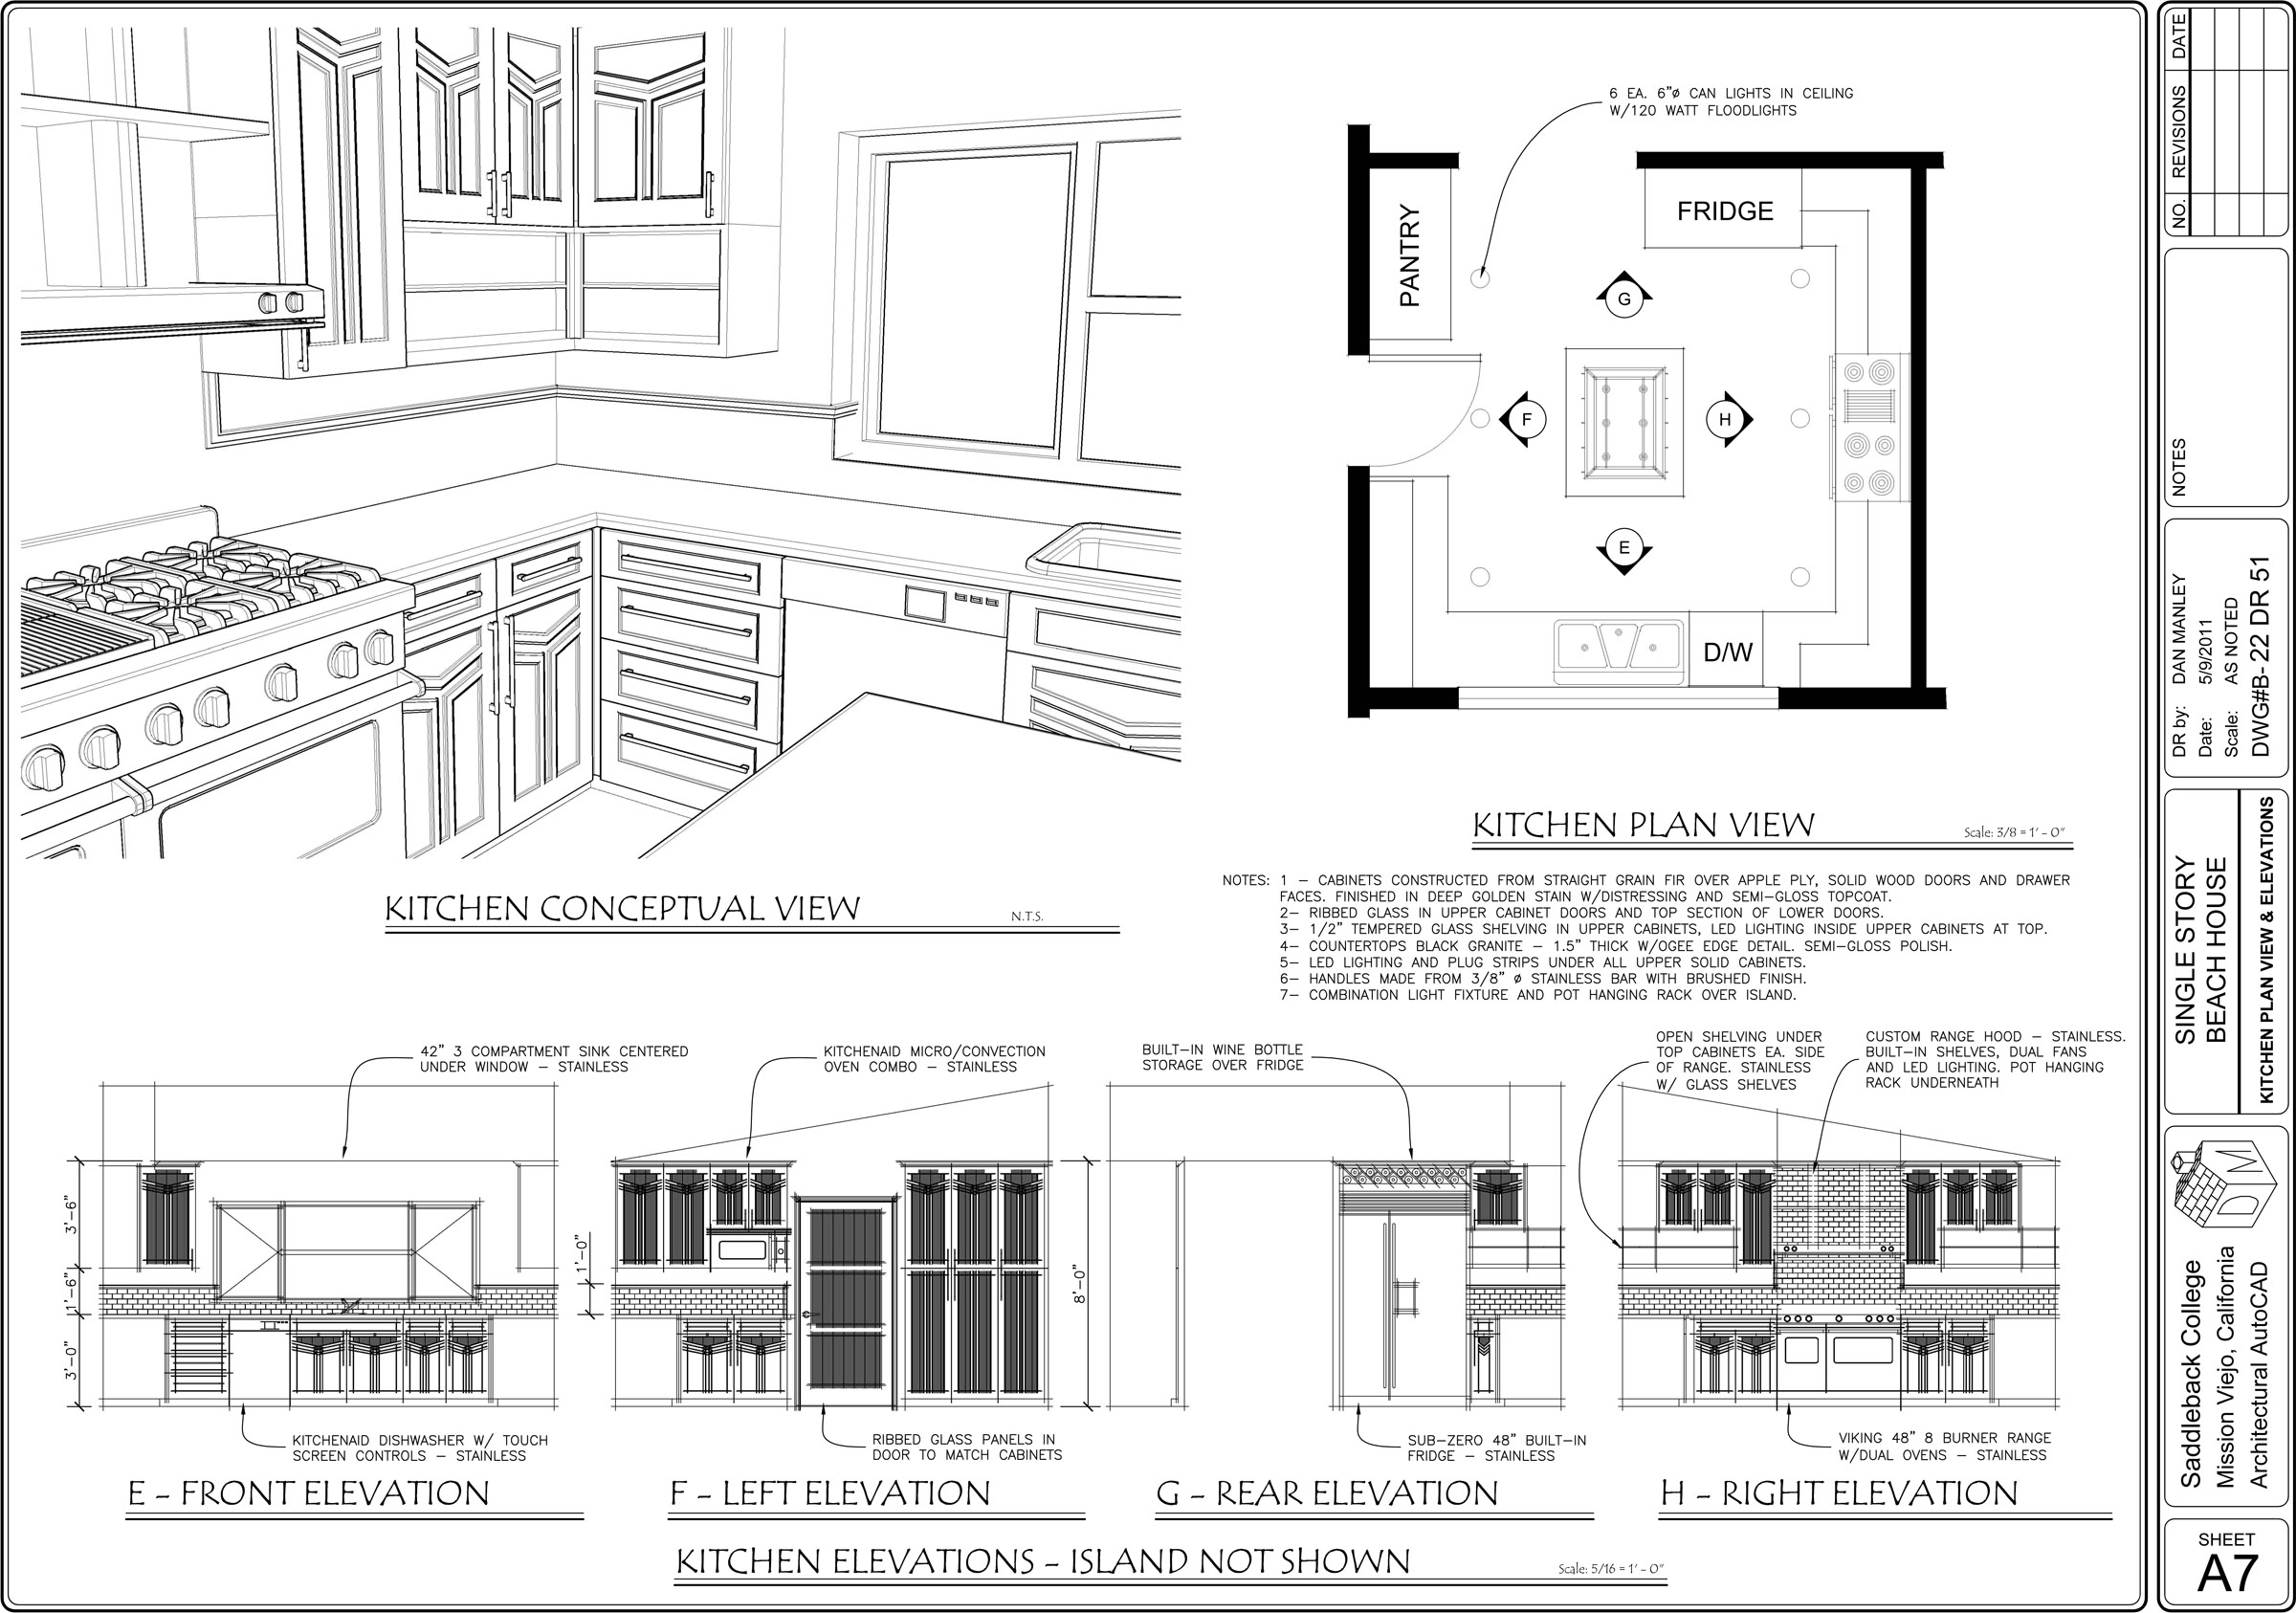 Kitchen Plan Elevation View : For more work examples please visit my site by daniel